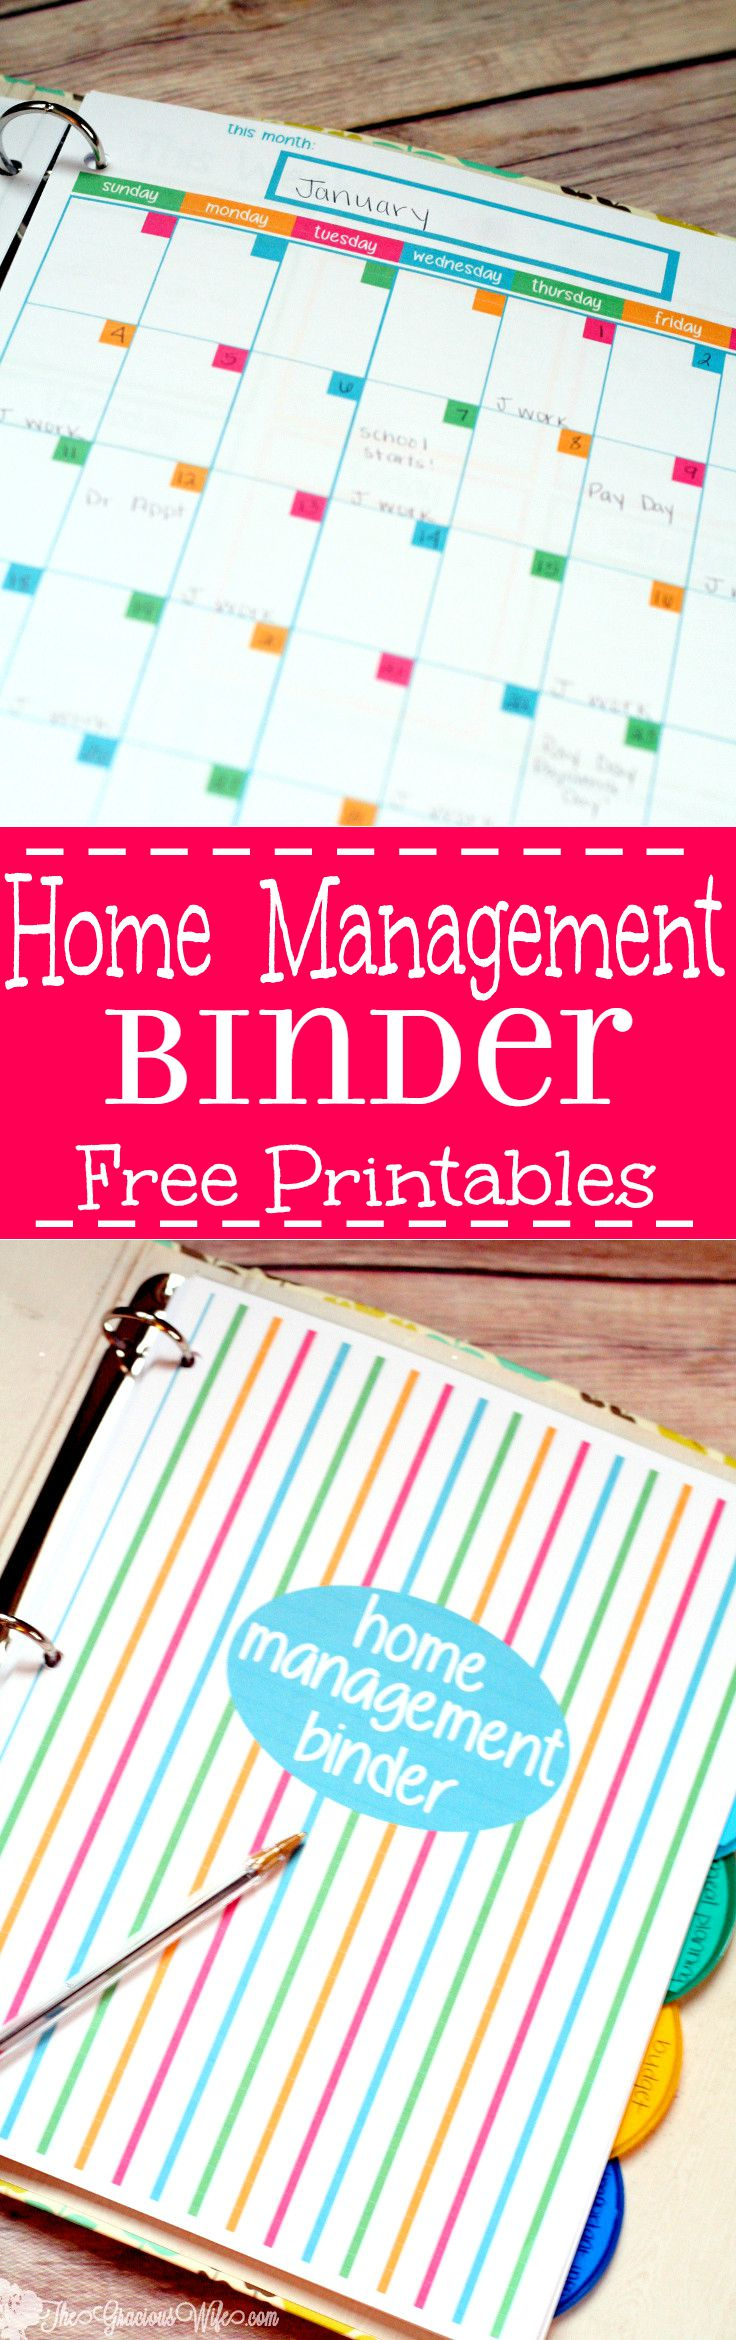 photo regarding Life Binder Printables referred to as House Handle Binder - Free of charge Printables The Gracious Spouse